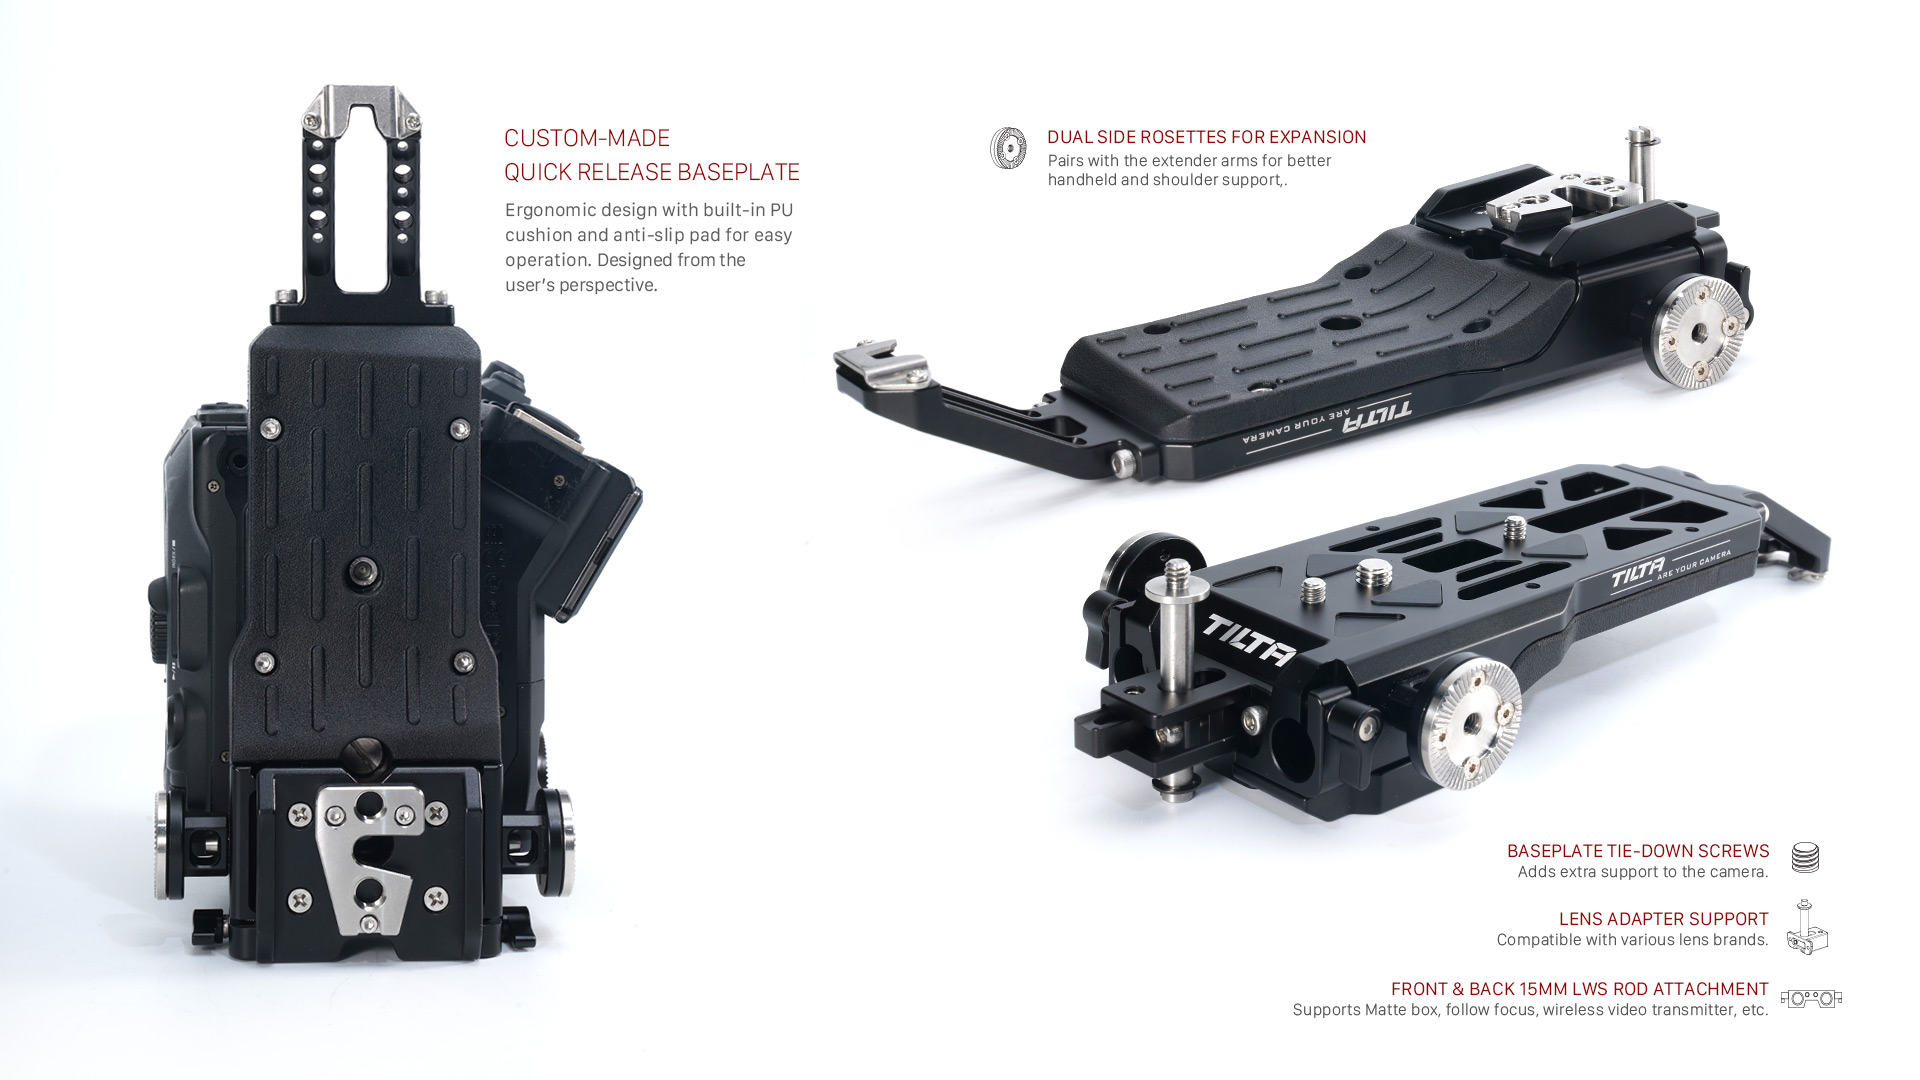 custom-made quick release baseplate + hardware features